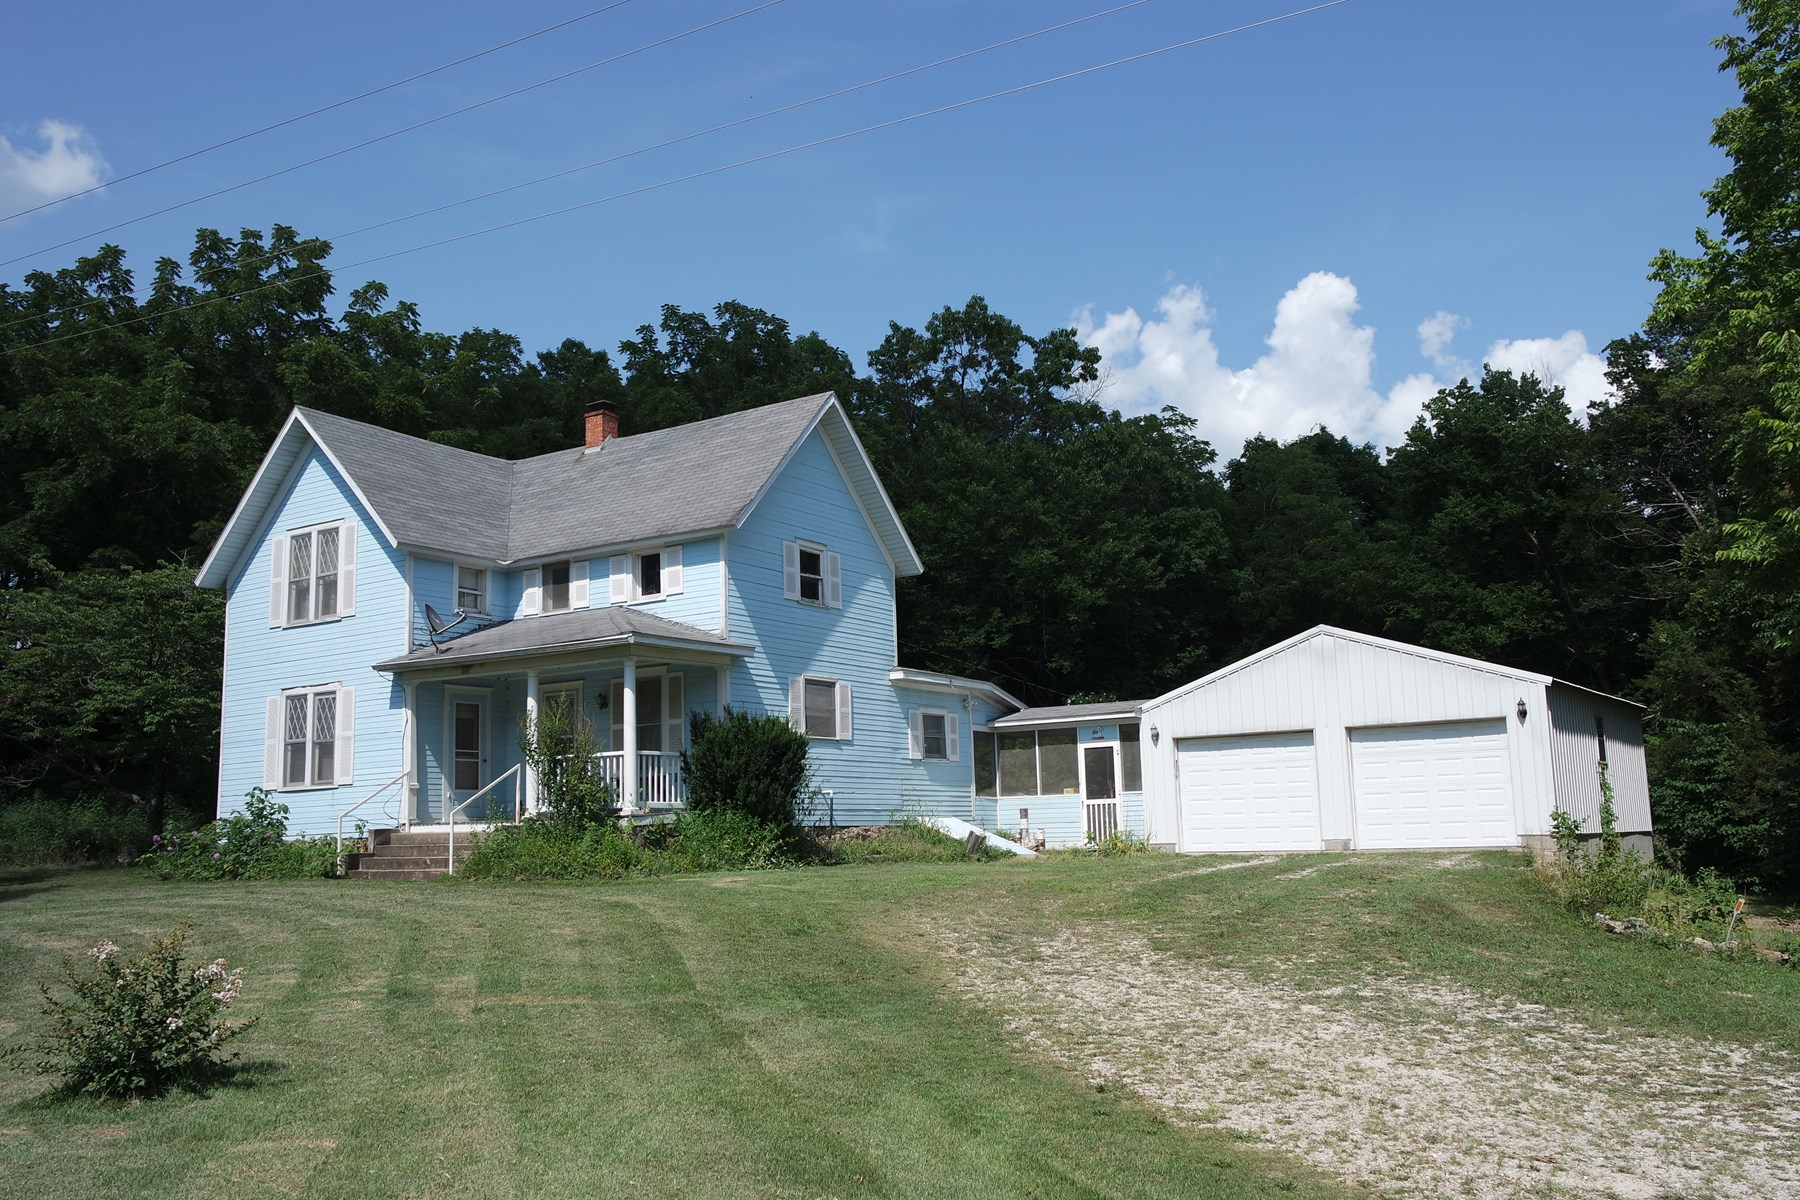 Southern Missouri Home for Sale with River Frontage